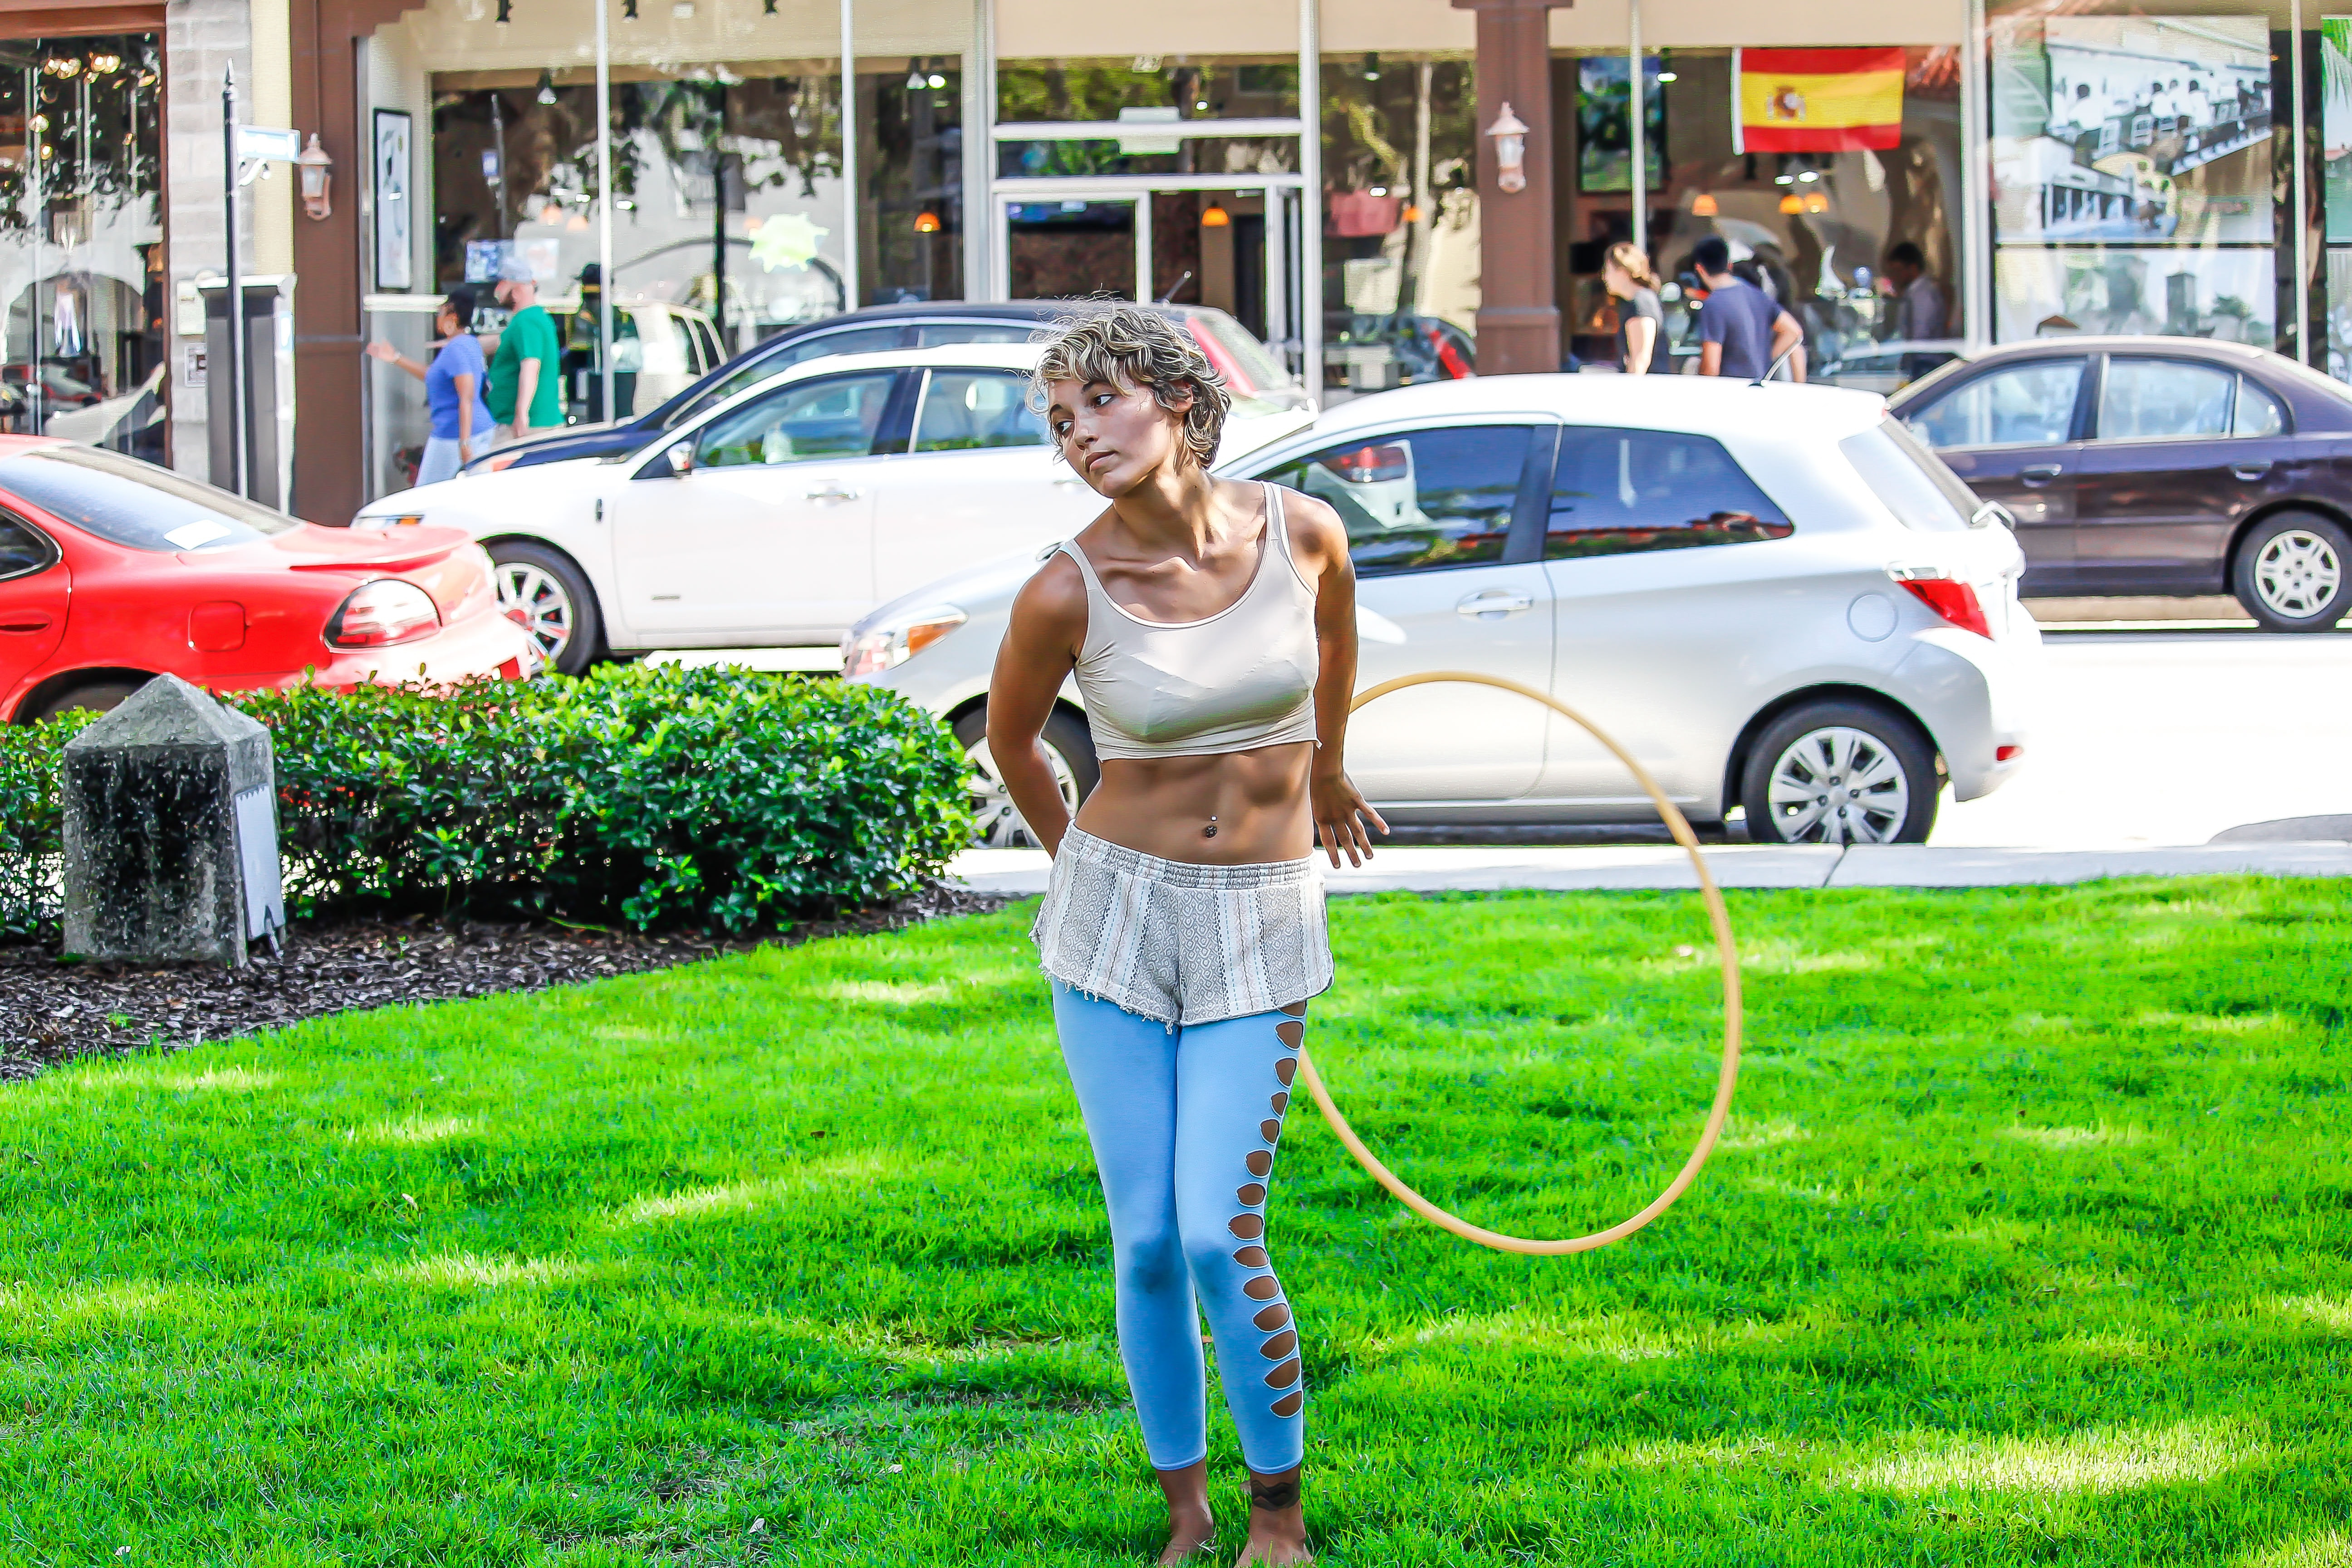 Woman in White Sleeveless Shirt and Blue Pants Holds Yellow Hula Hoop Stands on Green Grass, Adult, Outdoors, Wear, Vehicles, HQ Photo